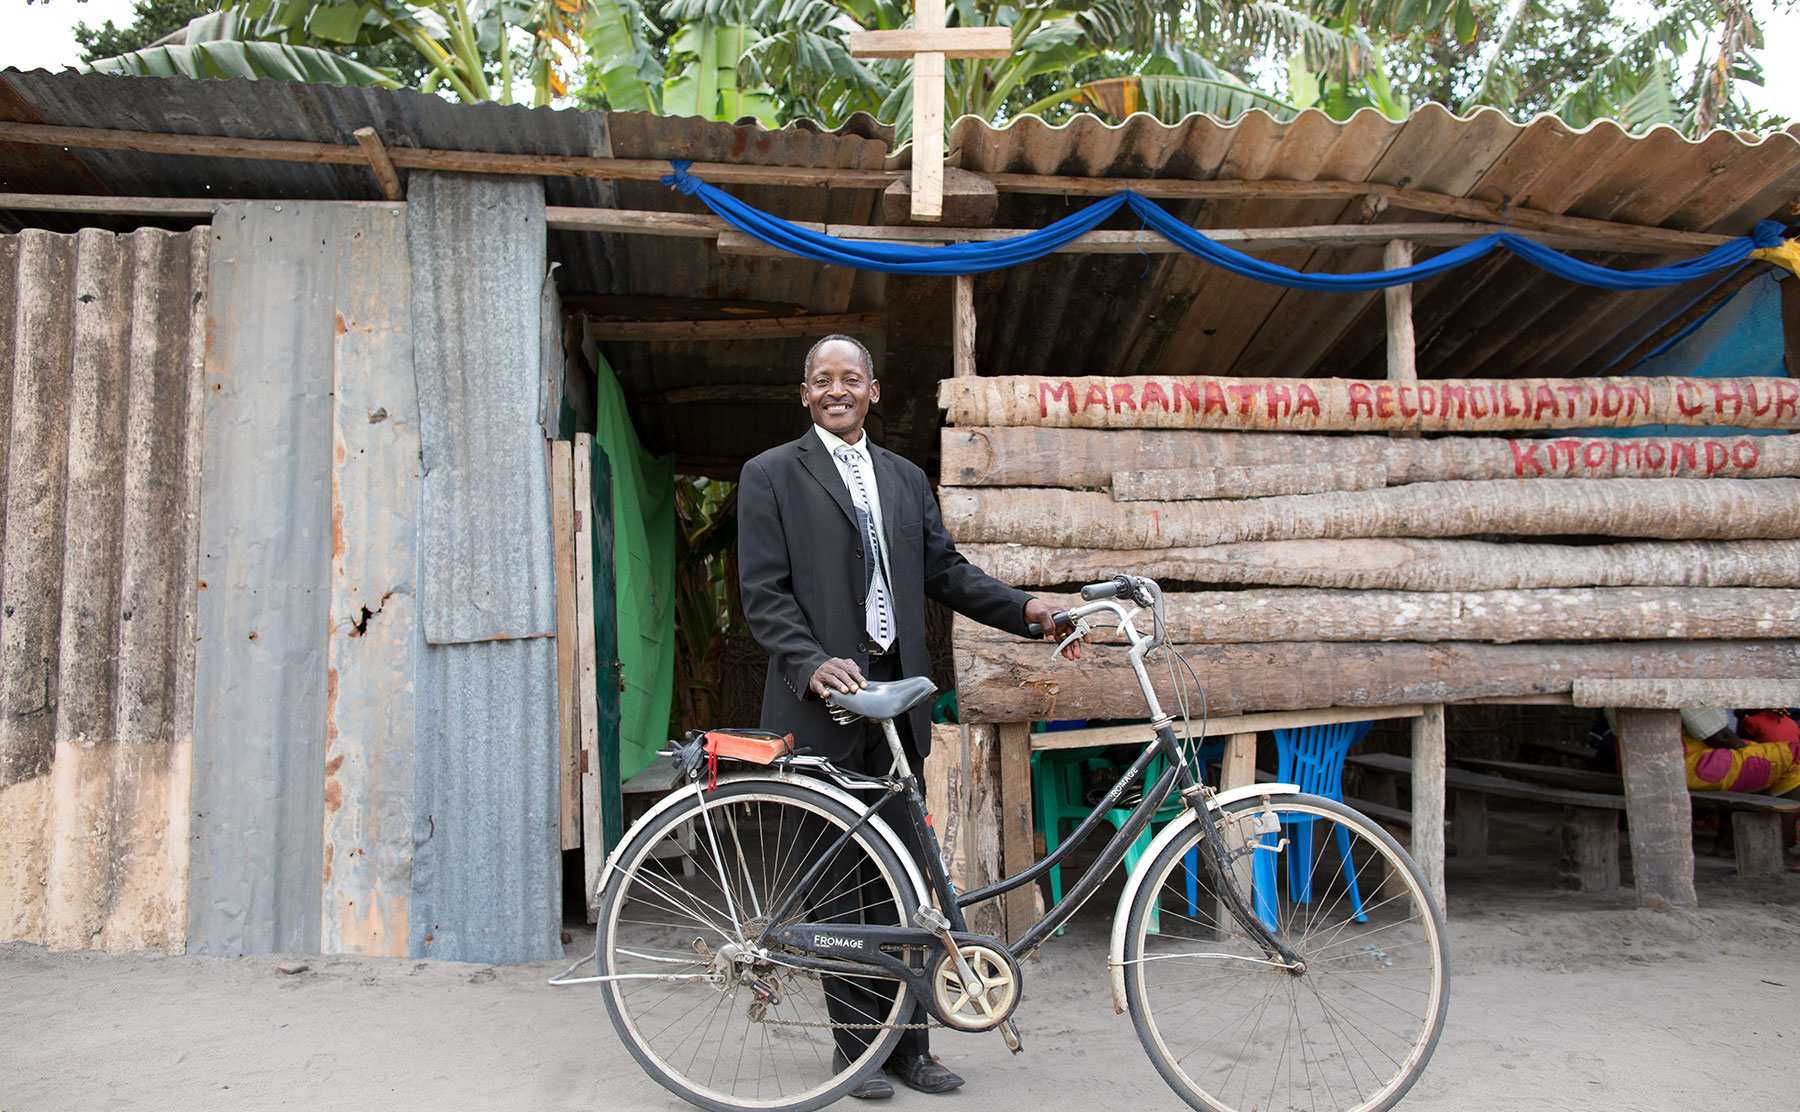 Samaritan's Purse provides bicycles or other vehicles to evangelists so they can reach isolated communities.